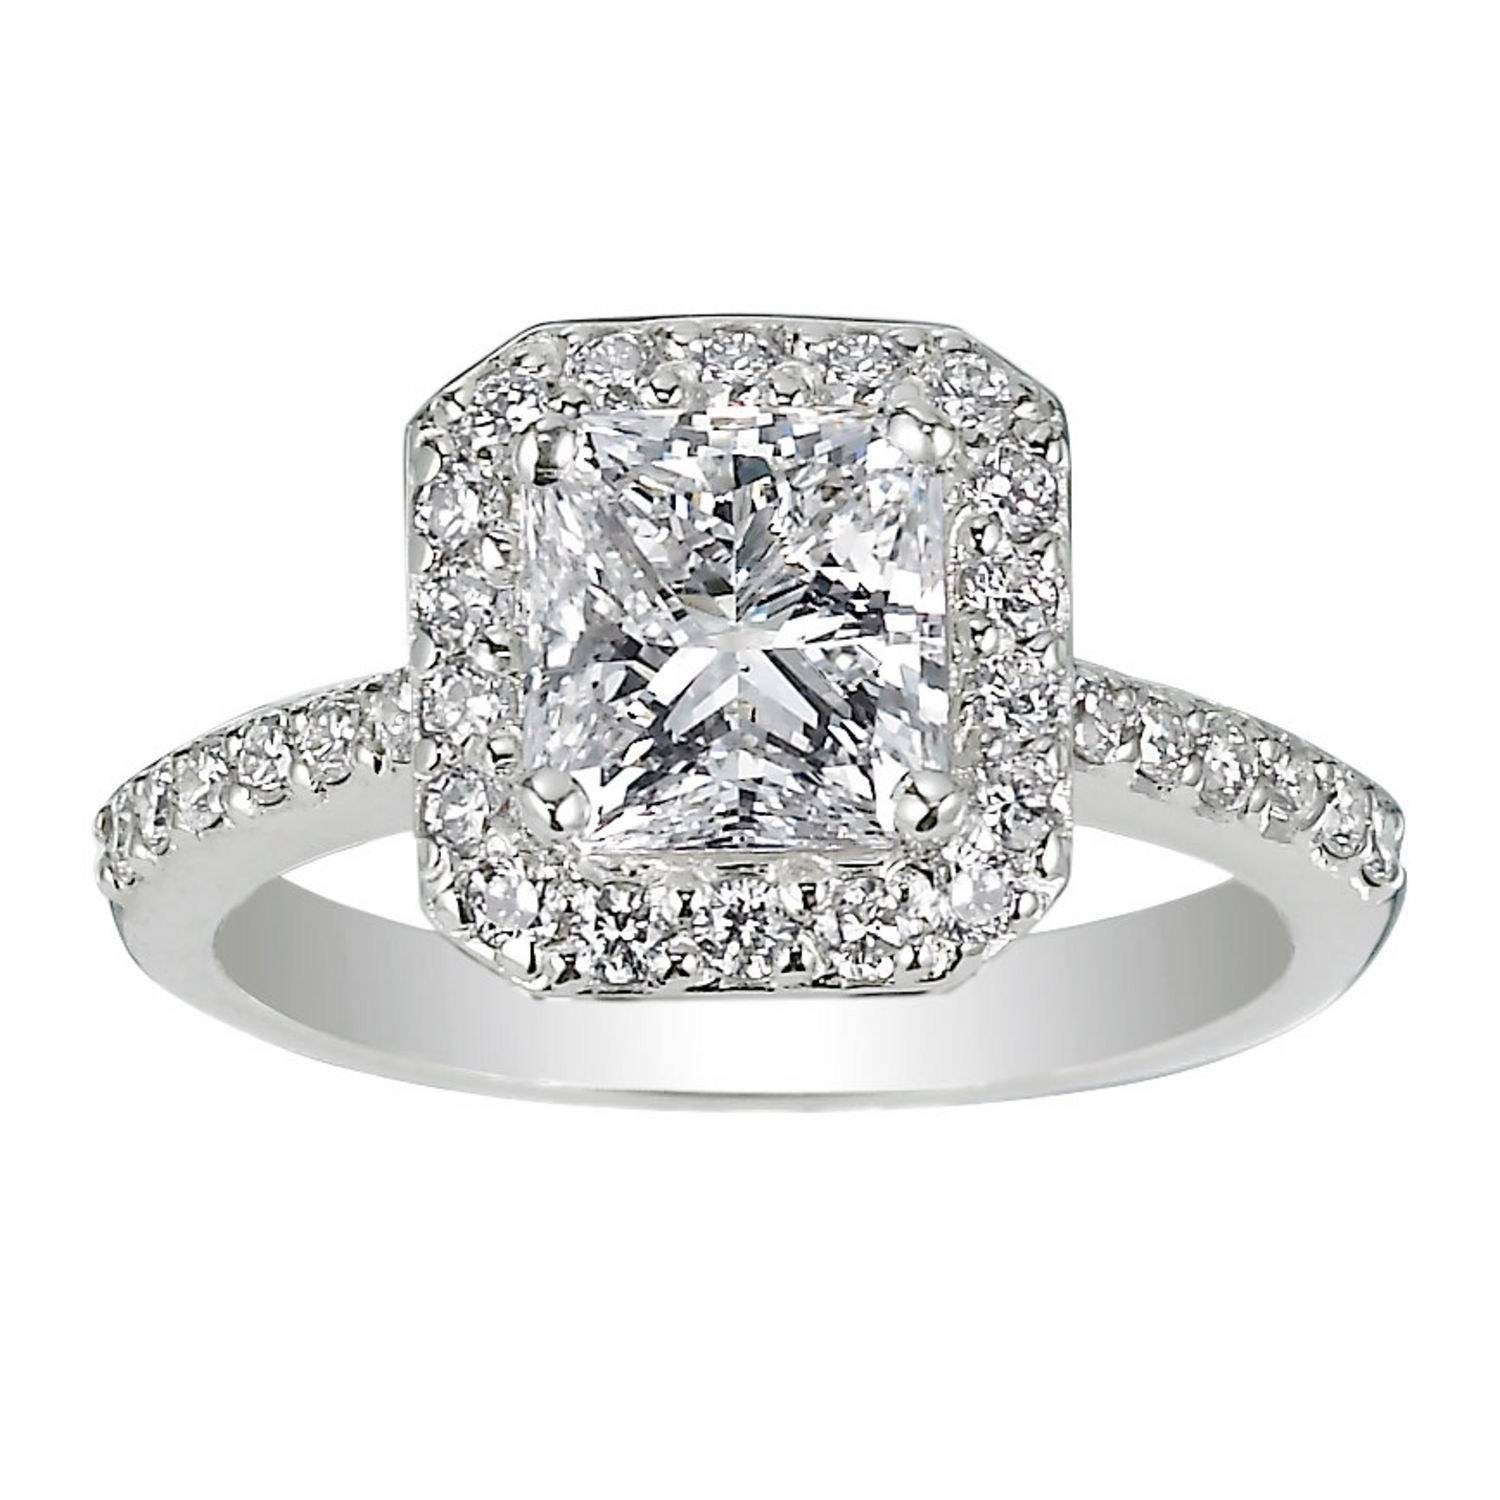 62 Diamond Engagement Rings Under $5,000 | Glamour Intended For Diamond Wedding Rings (View 2 of 15)